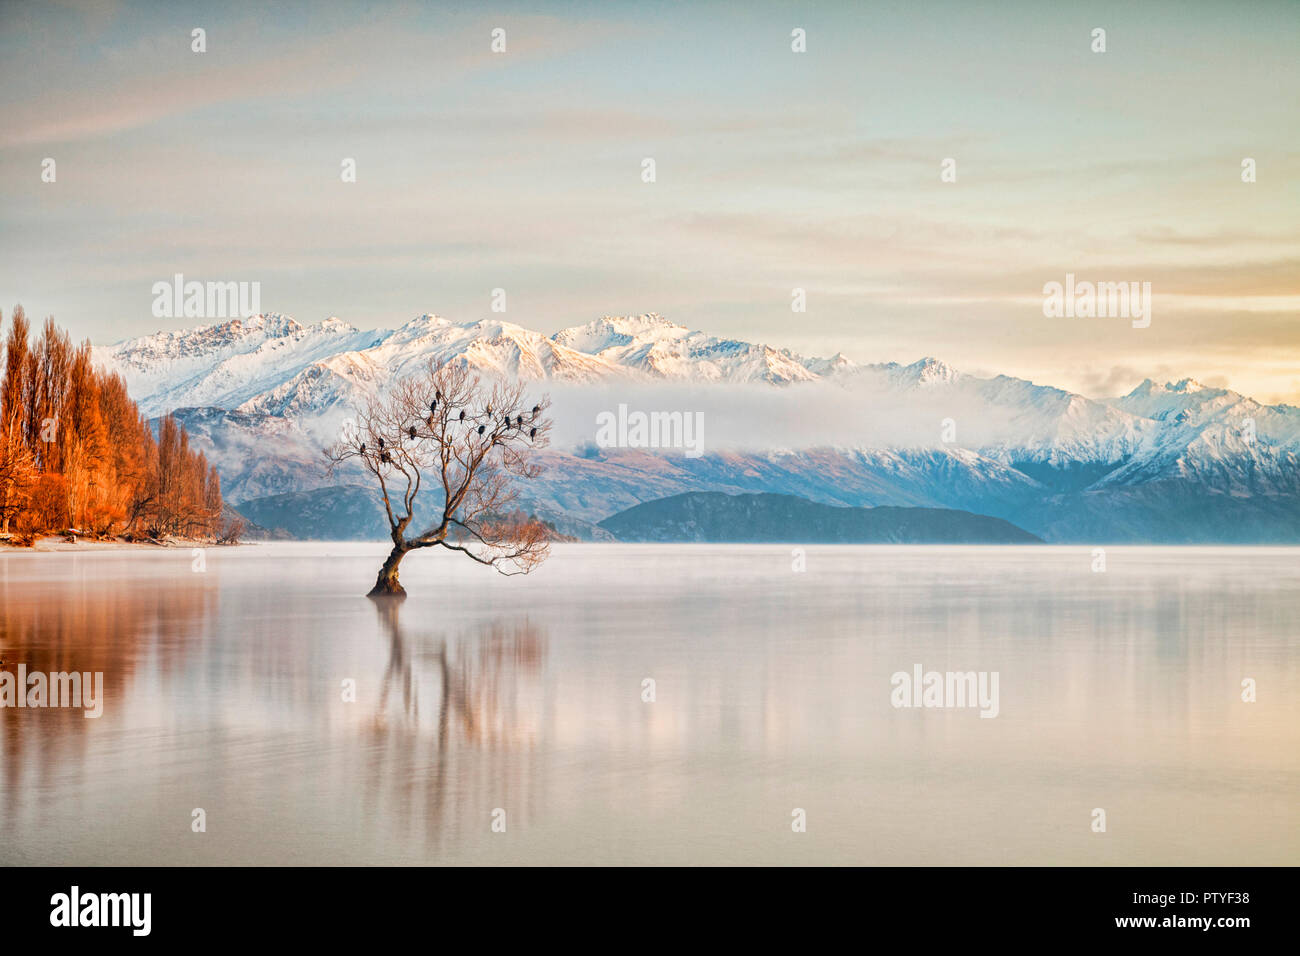 Winter at Lake Wanaka, Otago, New Zealand, with birds roosting in the single tree and mist rising from the water. - Stock Image